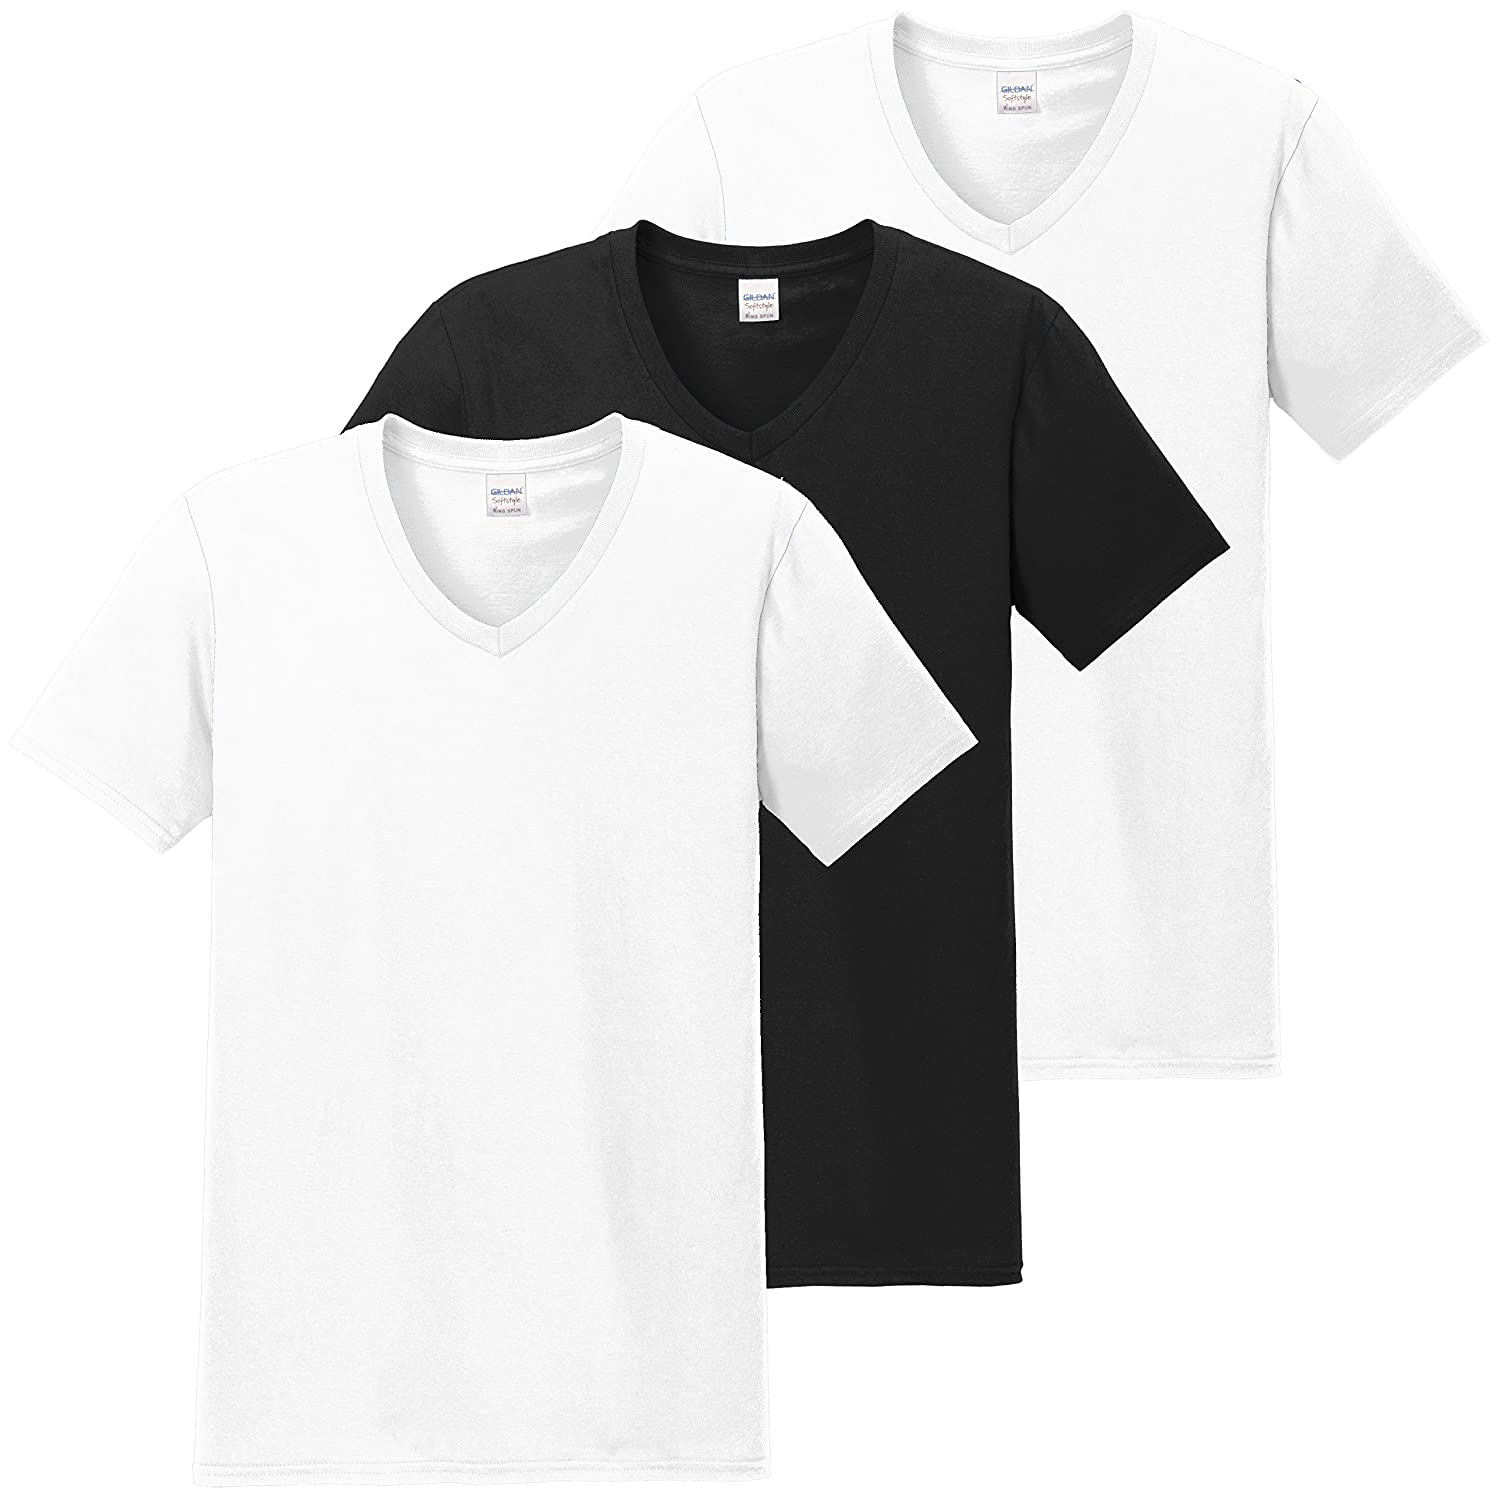 Hanes Classics V-neck Crew T-shirt Big 2 White and 1 Black 2 White 1 Black)